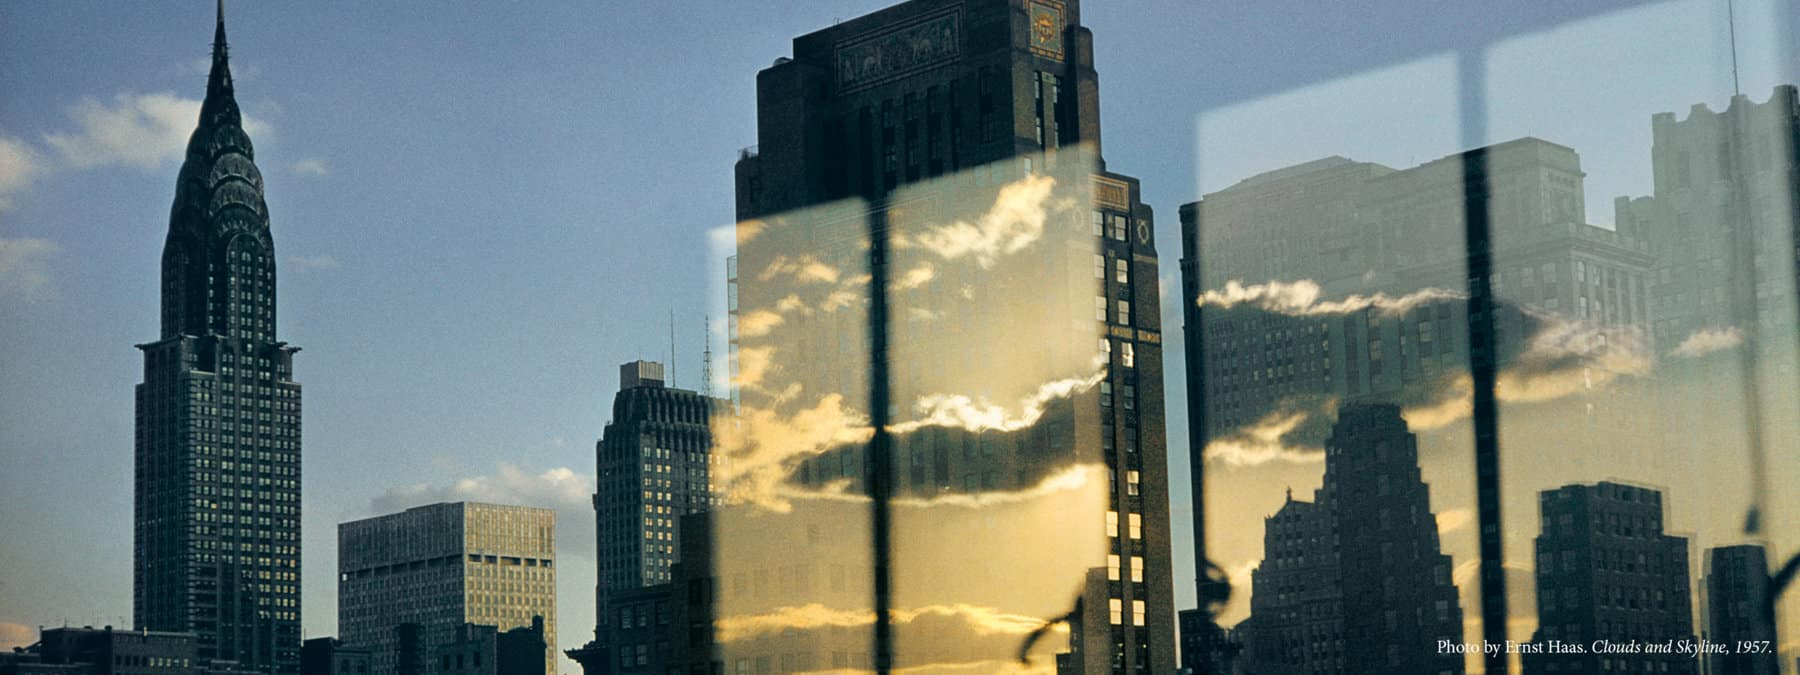 A color photo by Ernst Haas abstracts light reflections and clouds with the New York City skyline. A photograph of the Chrysler Building and midtown Manhattan is juxtaposed with four long rectangles showing a golden-and-blue sky with white clouds above the Manhattan skyline.